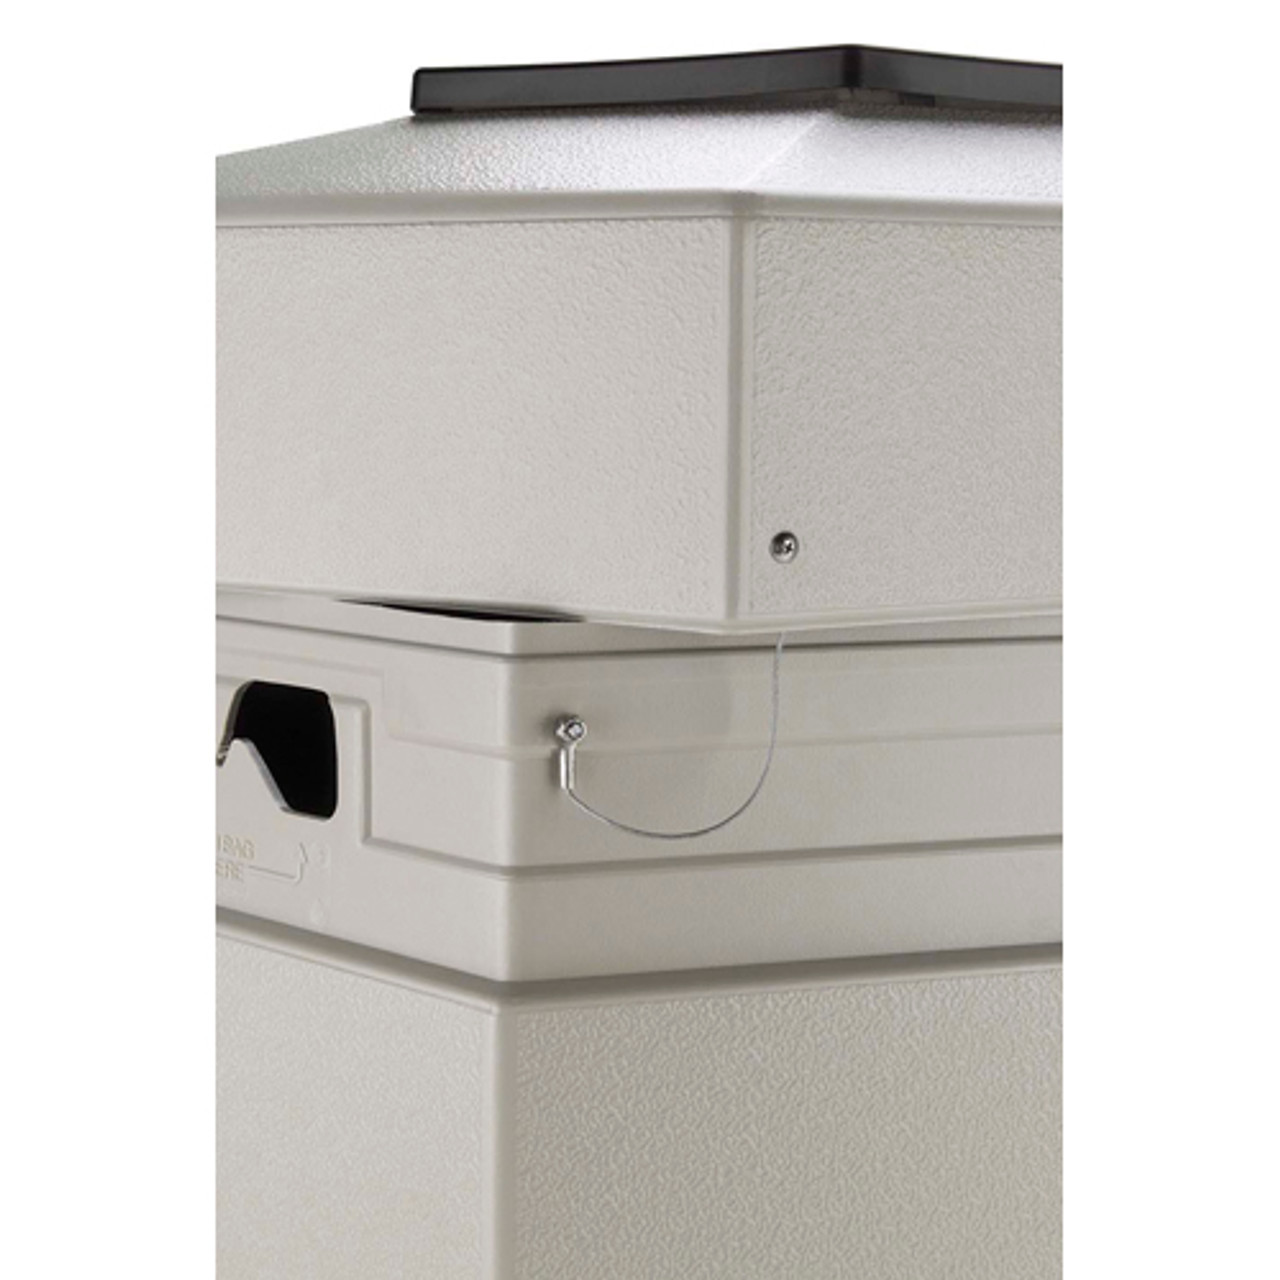 Optional 7 Inch Lid to Waste Container Base Cable